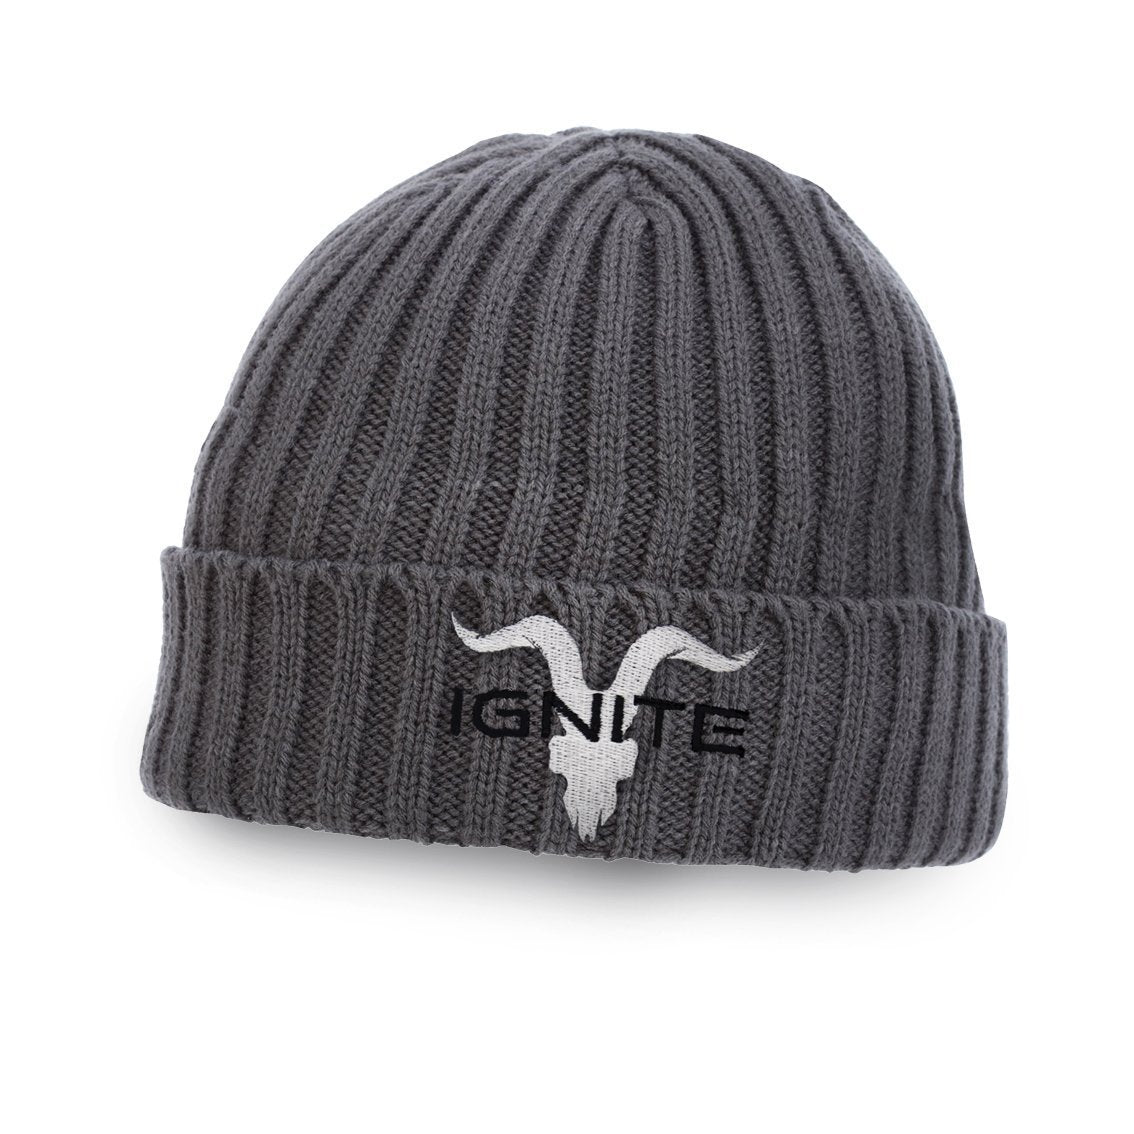 Ignite Premium Collection Charcoal Beanie - ignite-merch